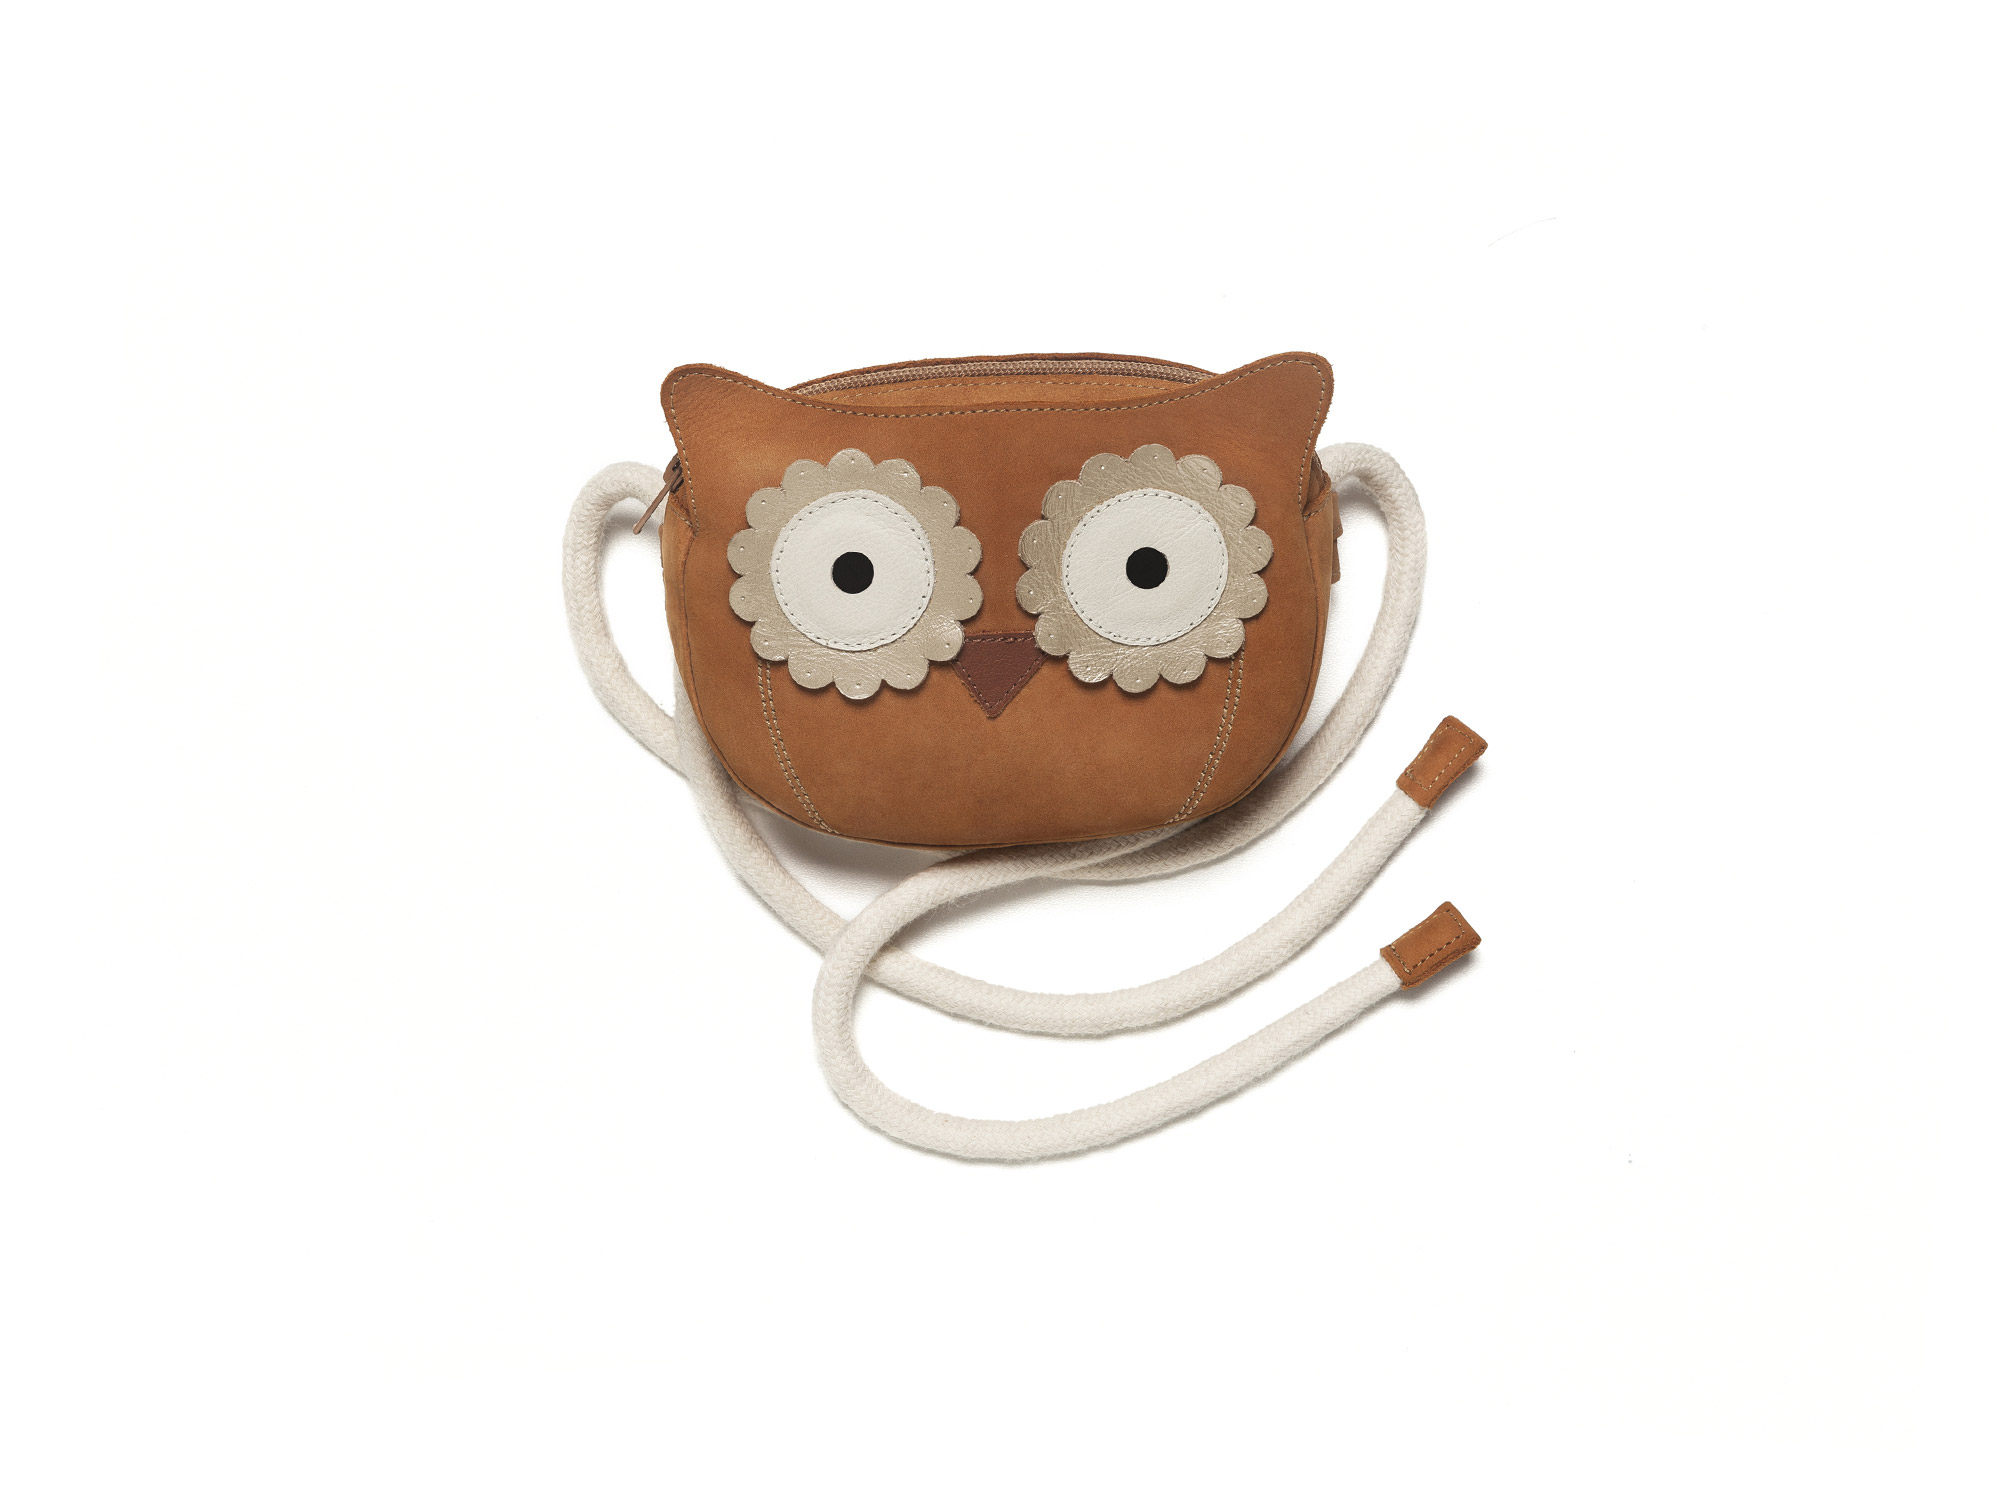 Handbag Bag Owl Ochre Baby for ages 0 to 2 years - 0